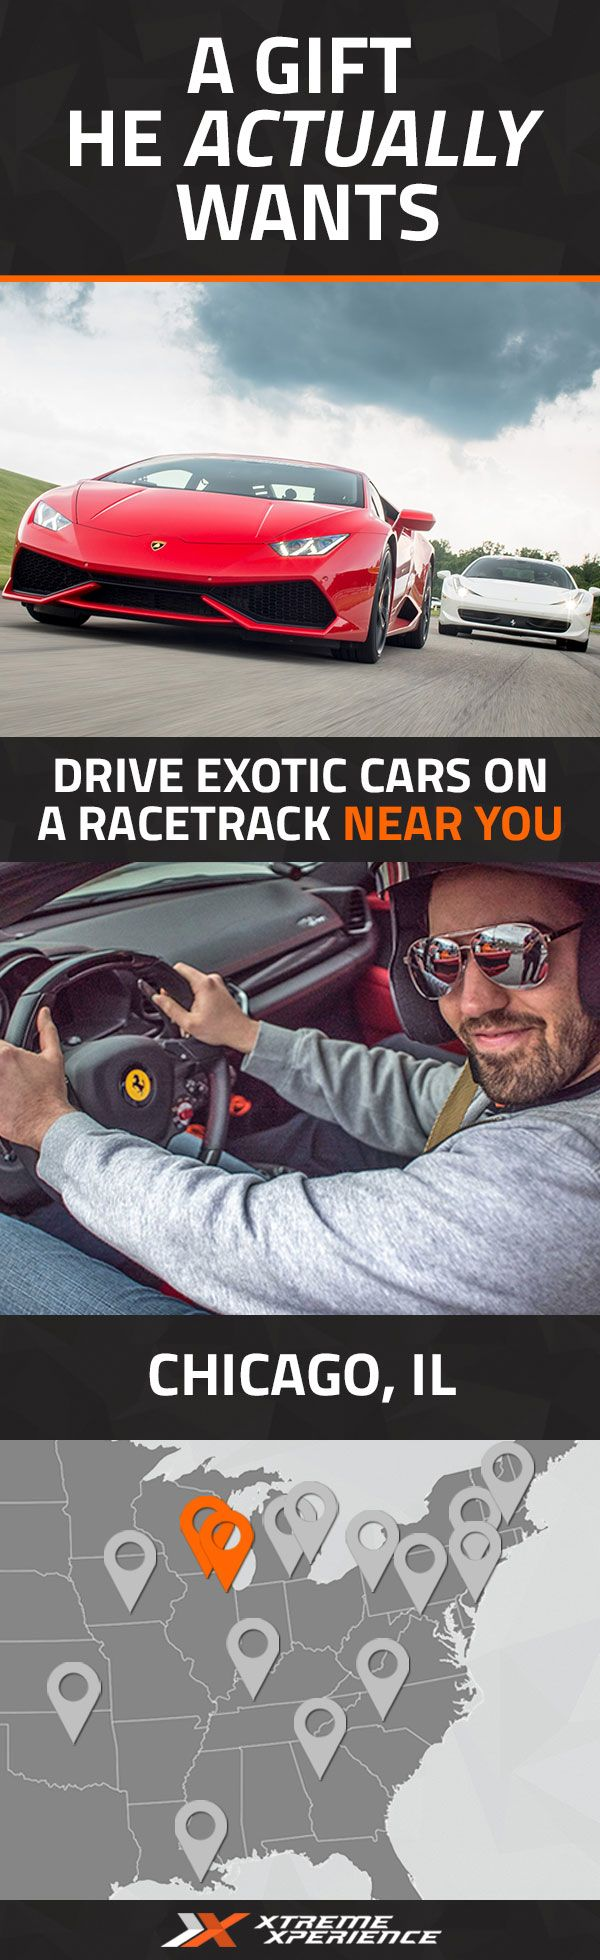 This year, get him a gift that he actually wants. Driving a Ferrari, Lamborghini, Porsche or other exotic sports car on a racetrack is a unique gift idea that is guaranteed to leave a smile on his face, a good story to tell and a life-long memory. Xtreme Xperience brings the thrill of a lifetime to you at two racetracks in Chicago from Apr. 15-17, Aug. 19-21, Sep. 16-18 & Oct. 21-23, 2016. Reserve your Supercar Track Xperience today for as low as $219. Space is limited!